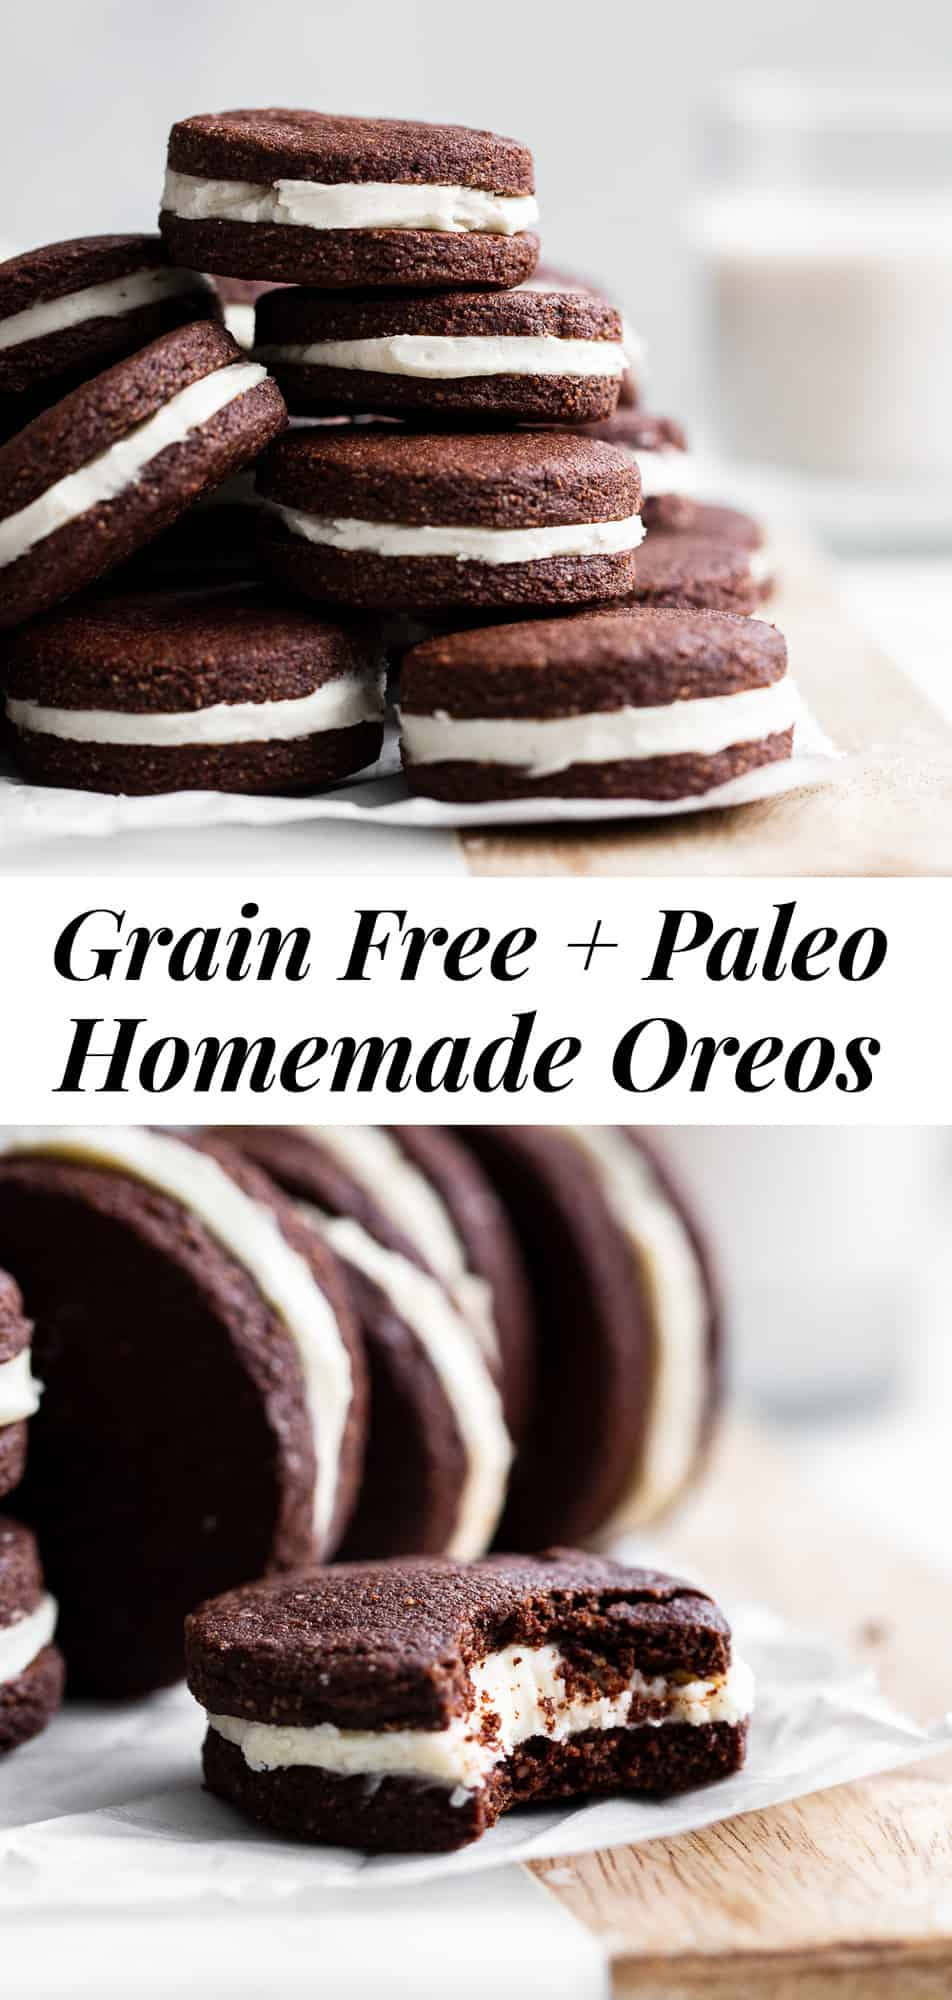 Make a healthier version of your favorite cookies at home with these easy paleo homemade Oreos! They're grain free and gluten free with dairy free and paleo options, but they taste so authentic that no one would ever guess. They're also a fun baking project for kids to help with! #paleobaking #glutenfree #grainfree #cookies #oreos